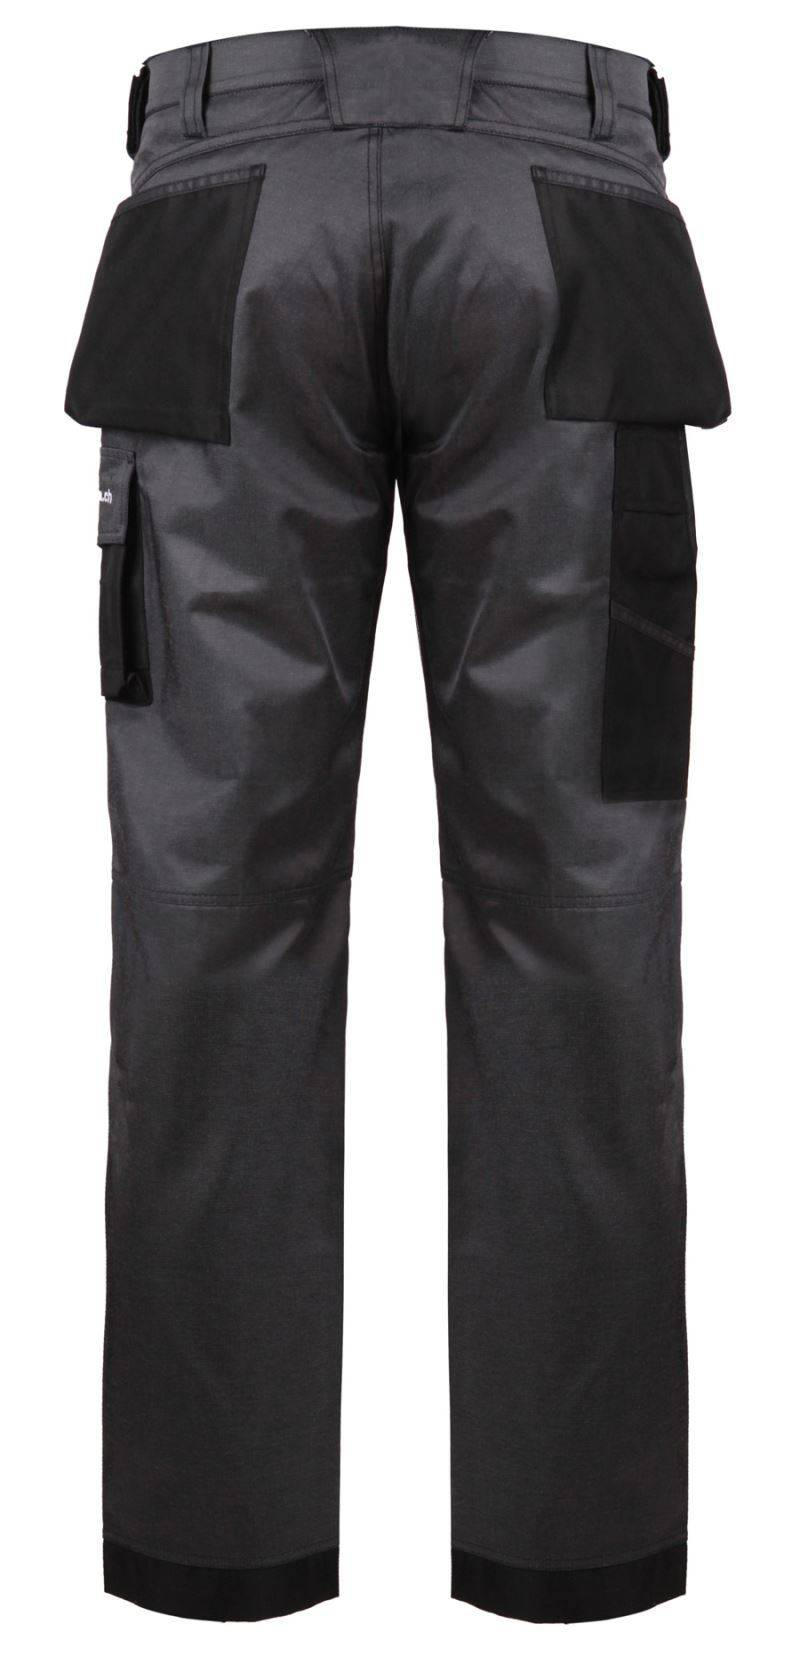 Provide OEM service unisex blue wear work trousers